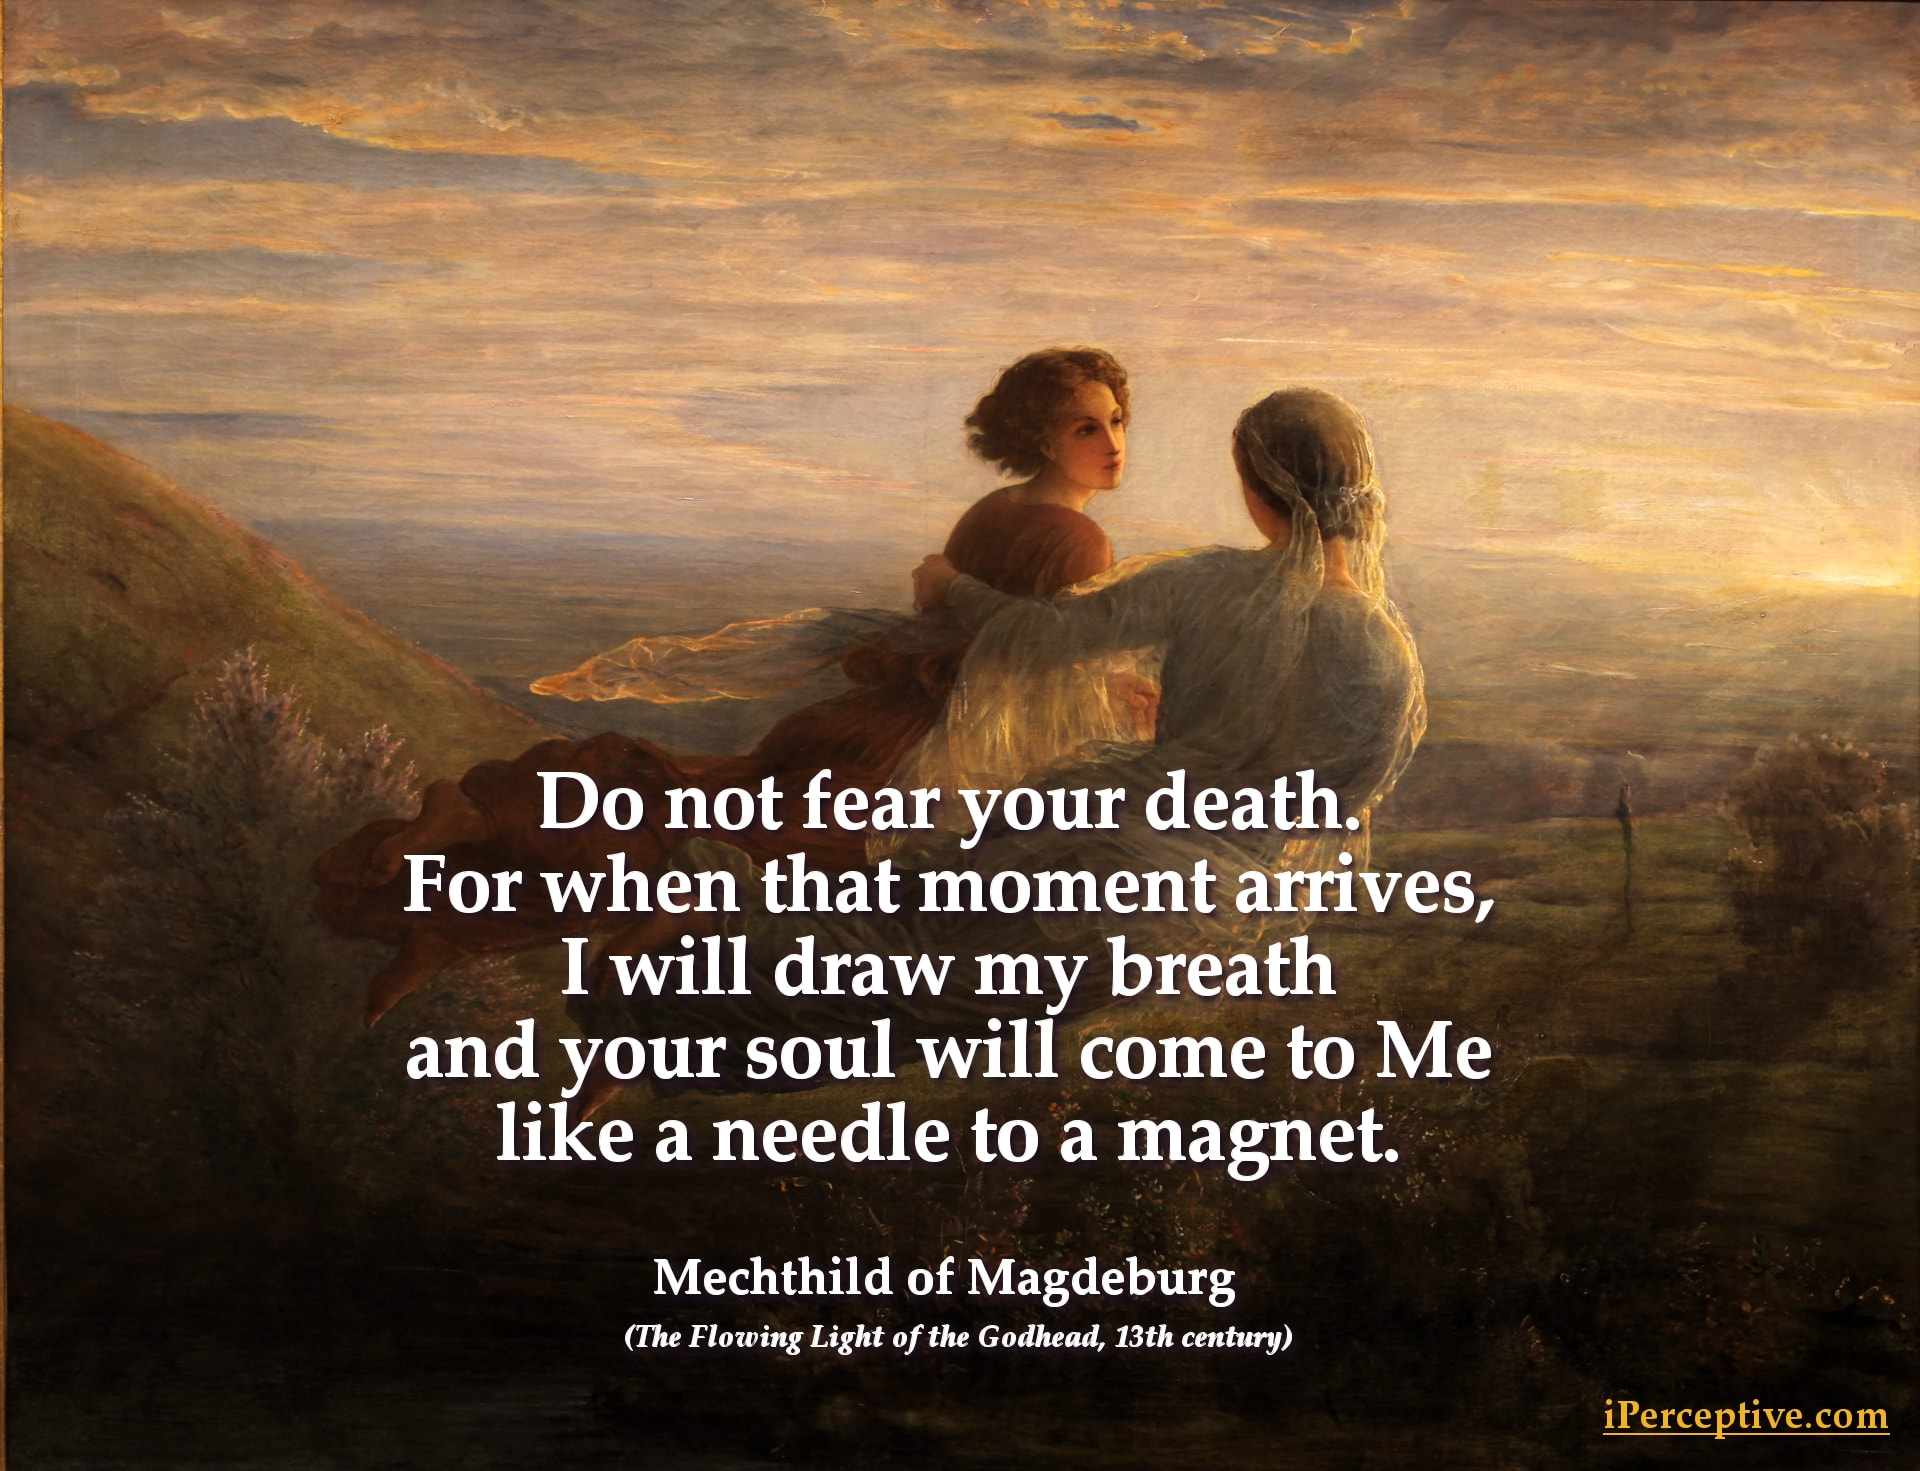 Mechthild of Magdeburg Christian Mystic Quote: Do not fear your death. for when that moment arrives